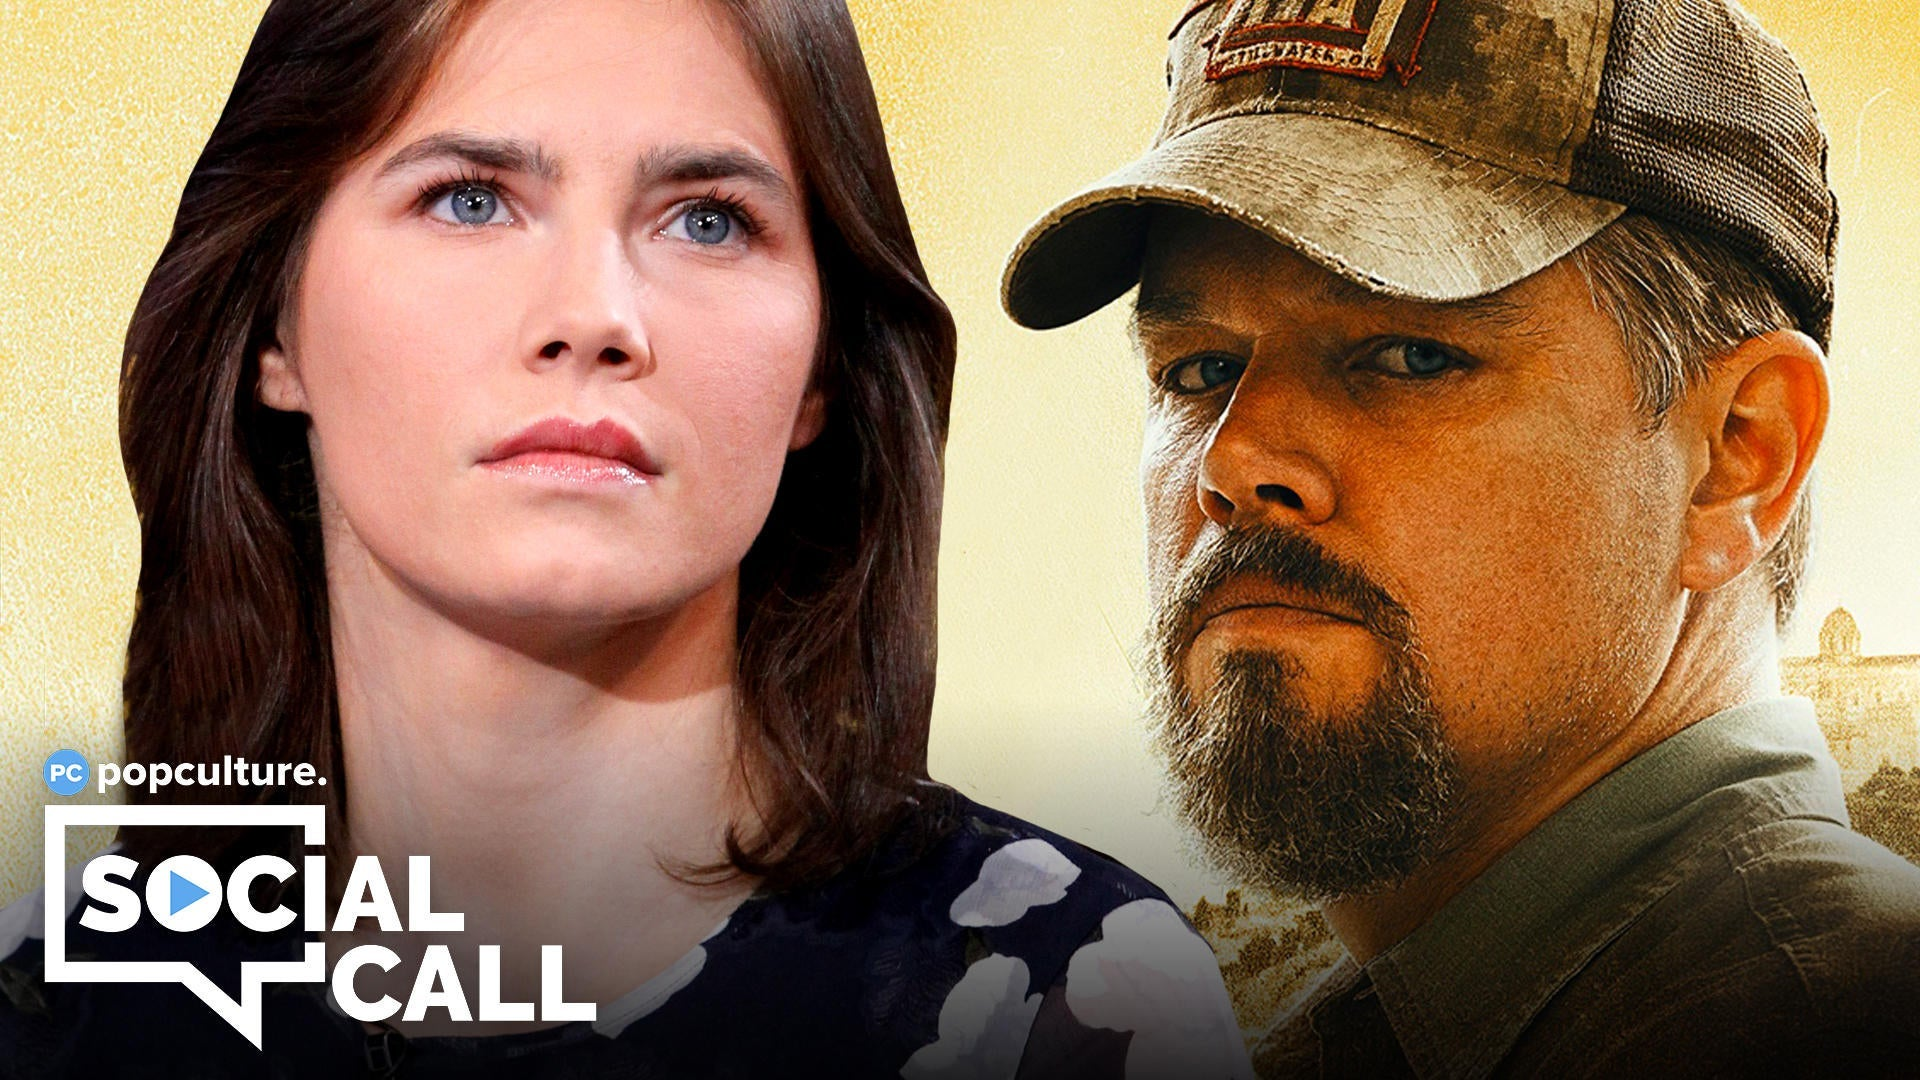 Popculture Social Call - Amanda Knox and Stillwater - Why Matt Damon's New Movie Is Being Slammed by Its Real-Life Inspiration